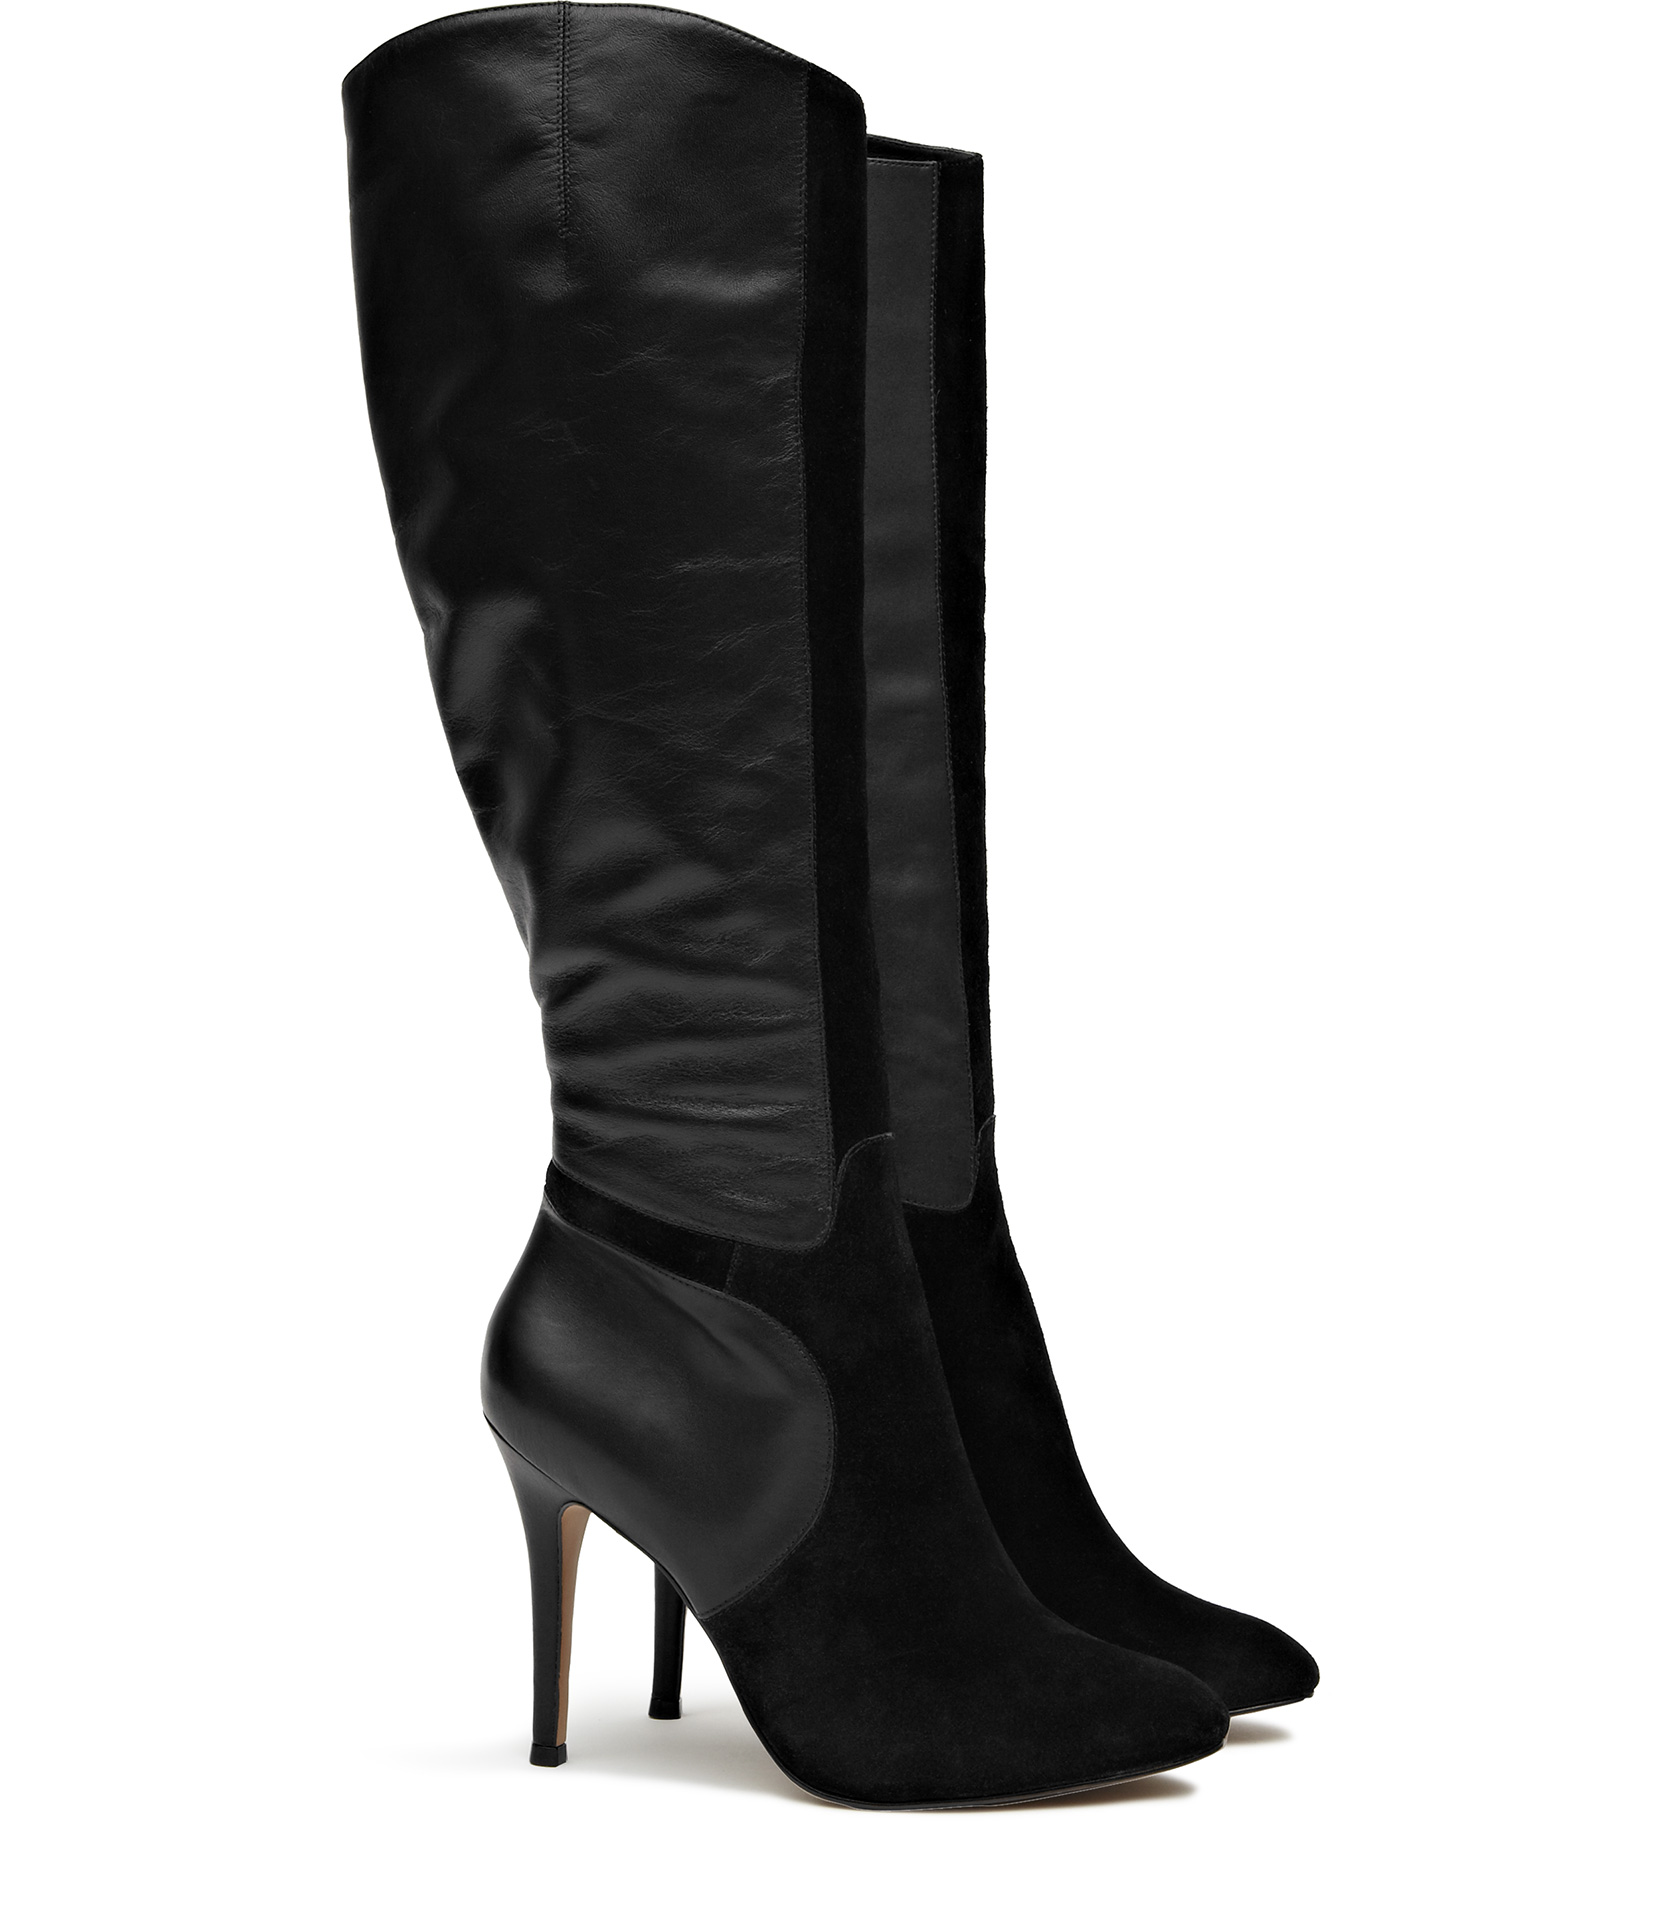 Reiss Rosanna Suede And Leather Knee High Boots In Black